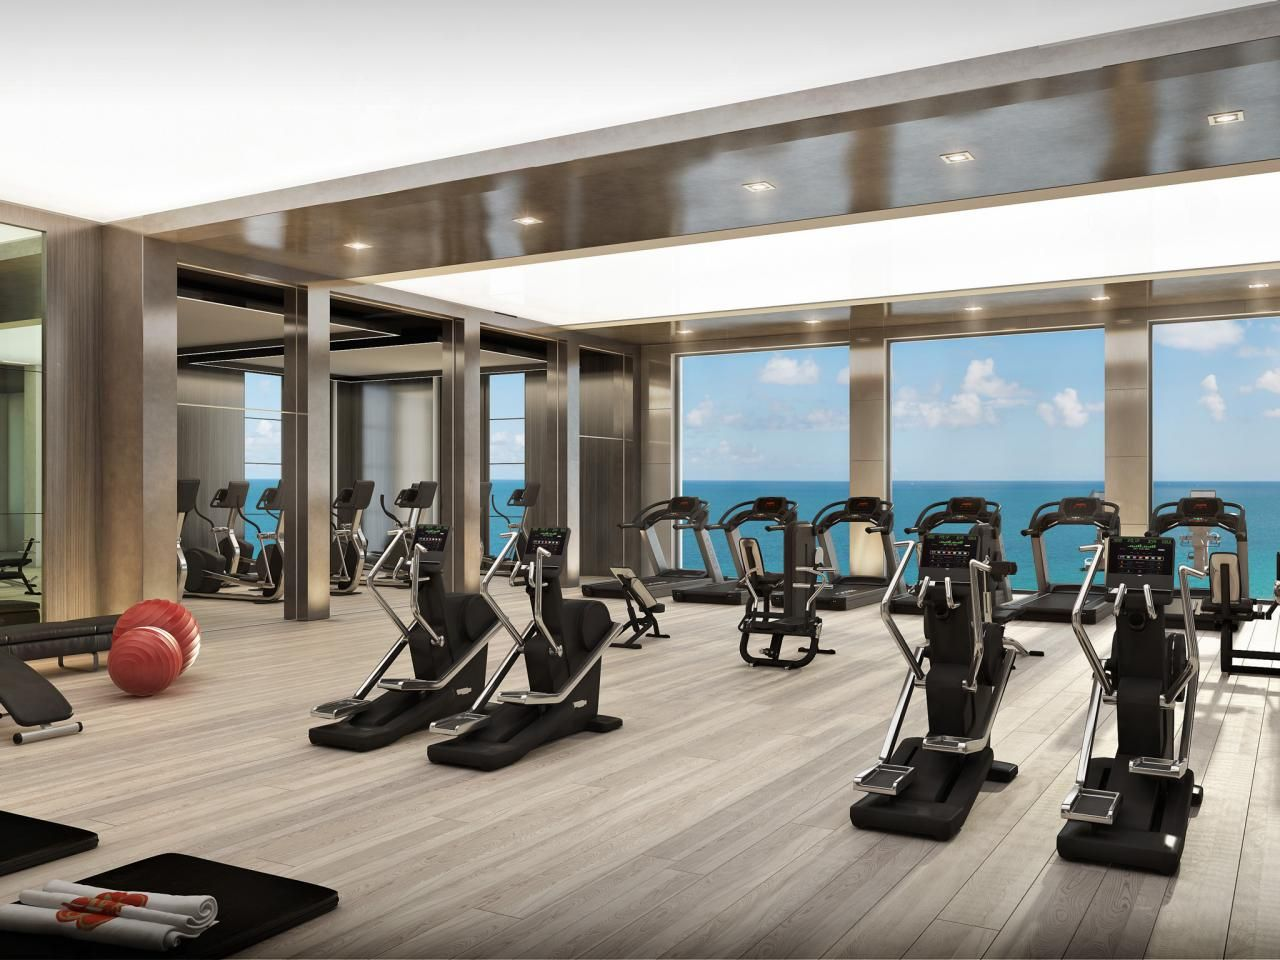 12 Designer Fitness Centers That Will Make You Actually Want To Work Out Home Gym Design Gym Design Fitness Center Design